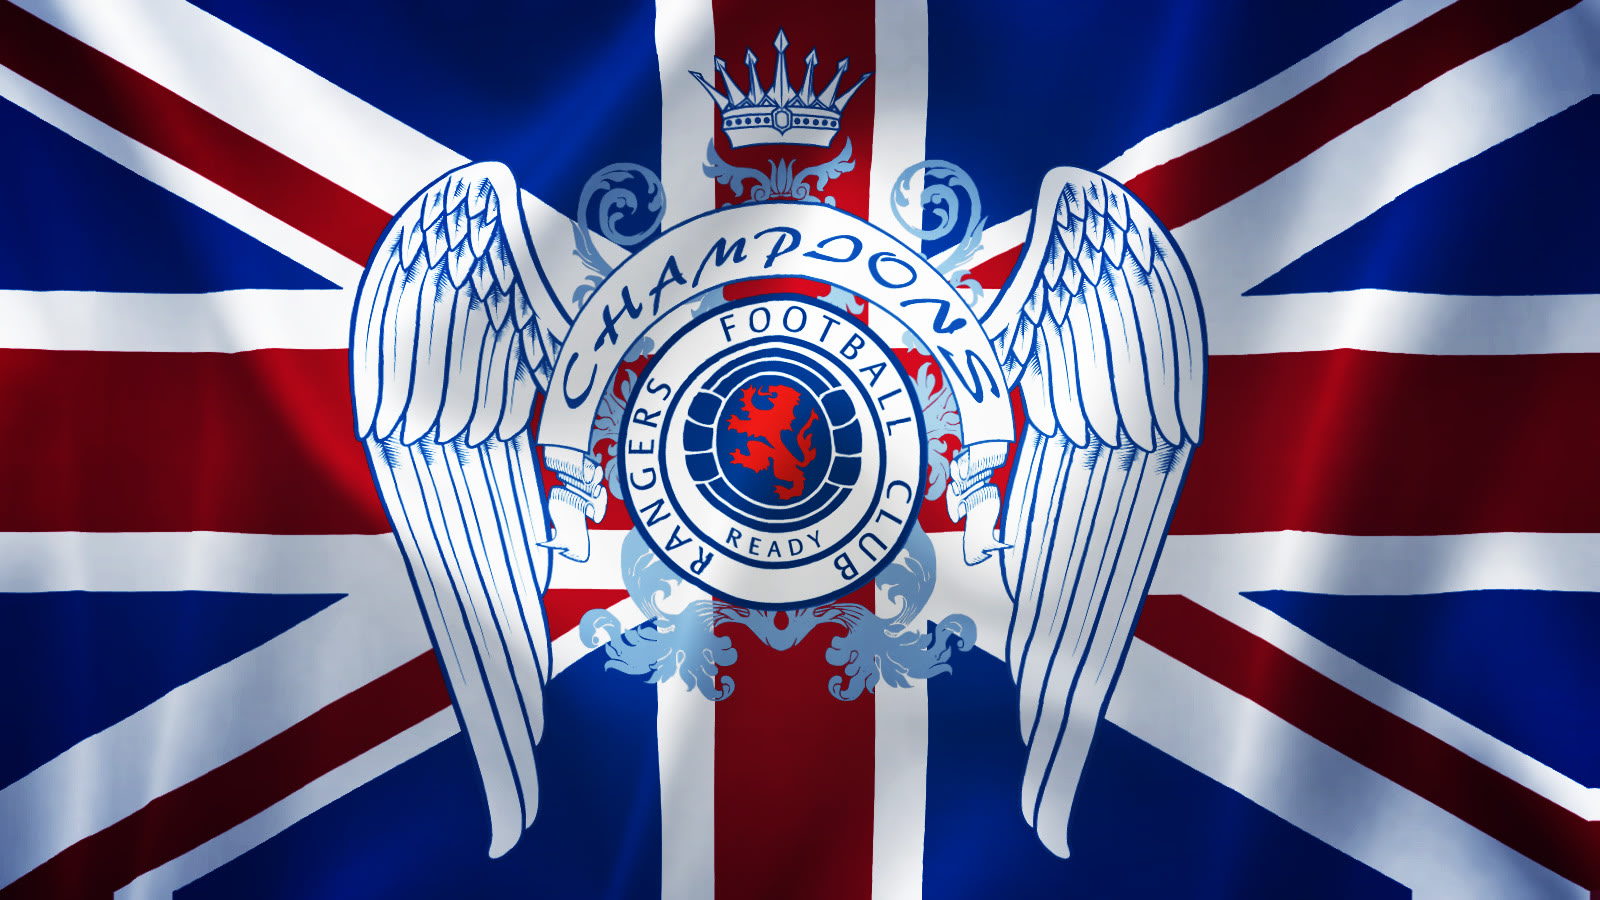 football unofficial rangers glasgow rangers includingjan a detailed 1600x900